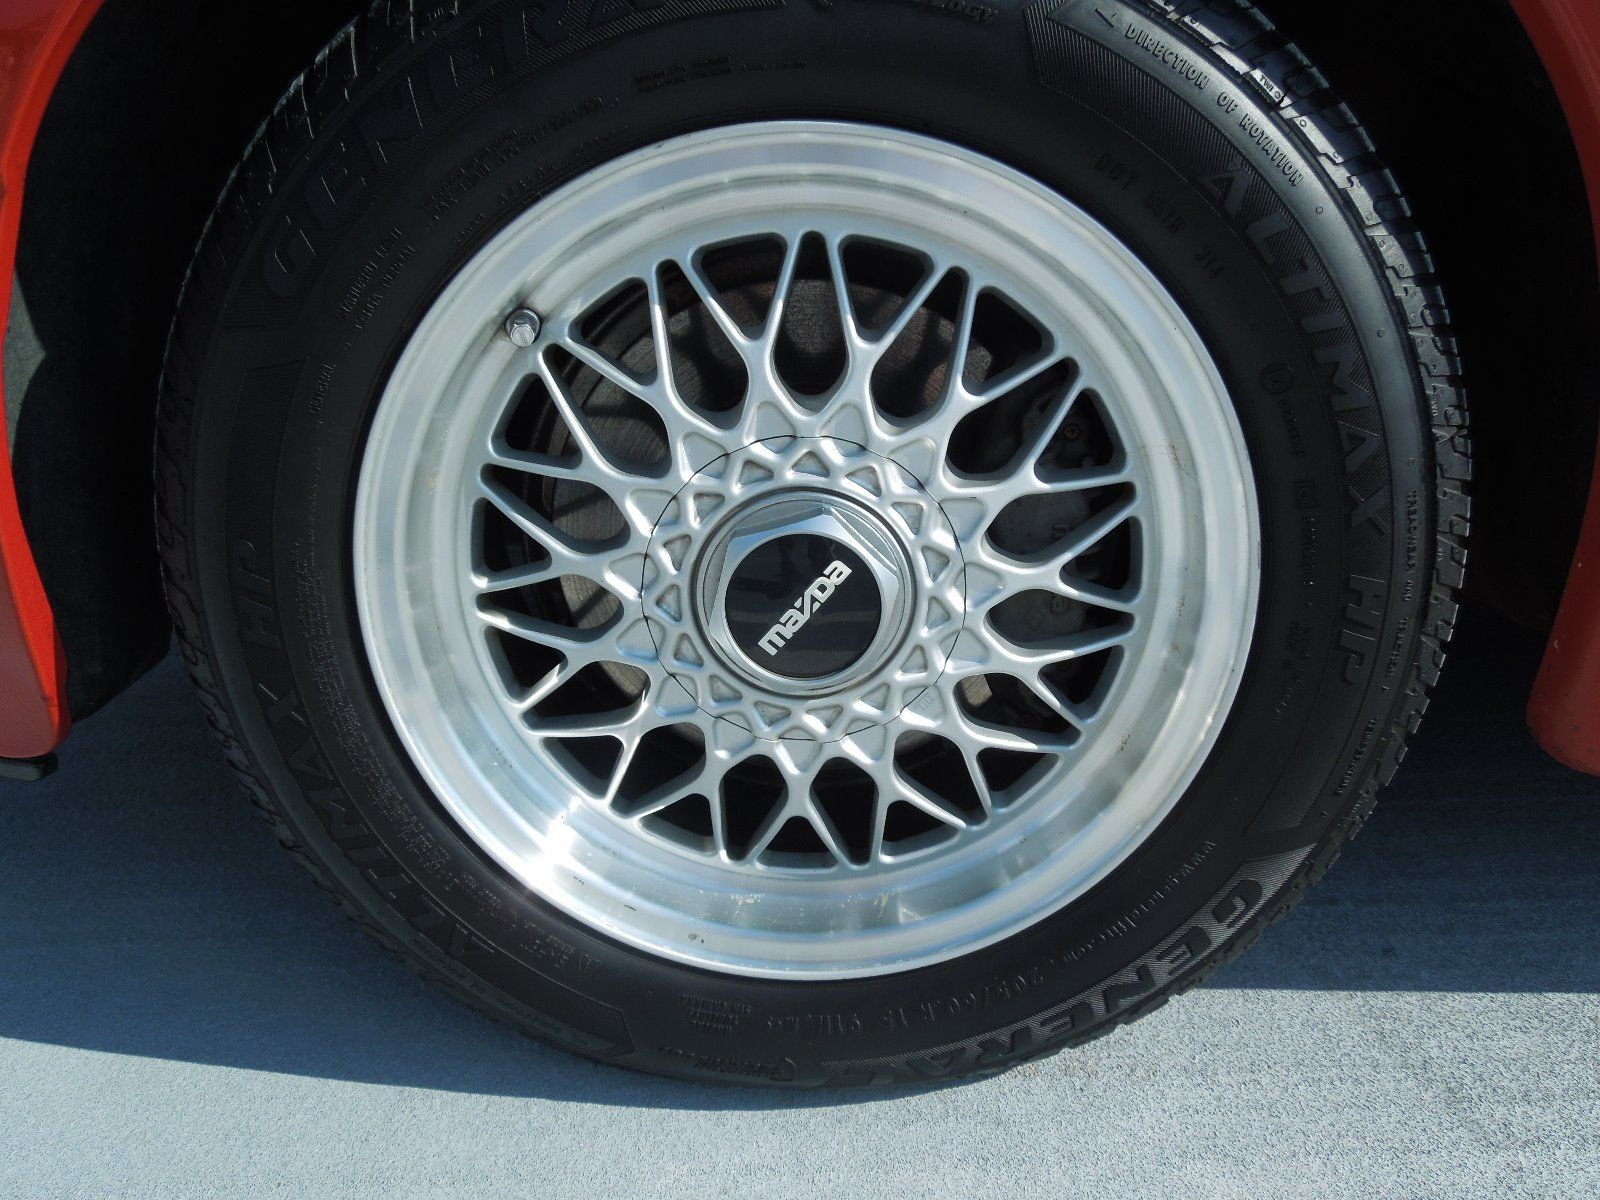 1988 Mazda RX-7 convertible wheel detail